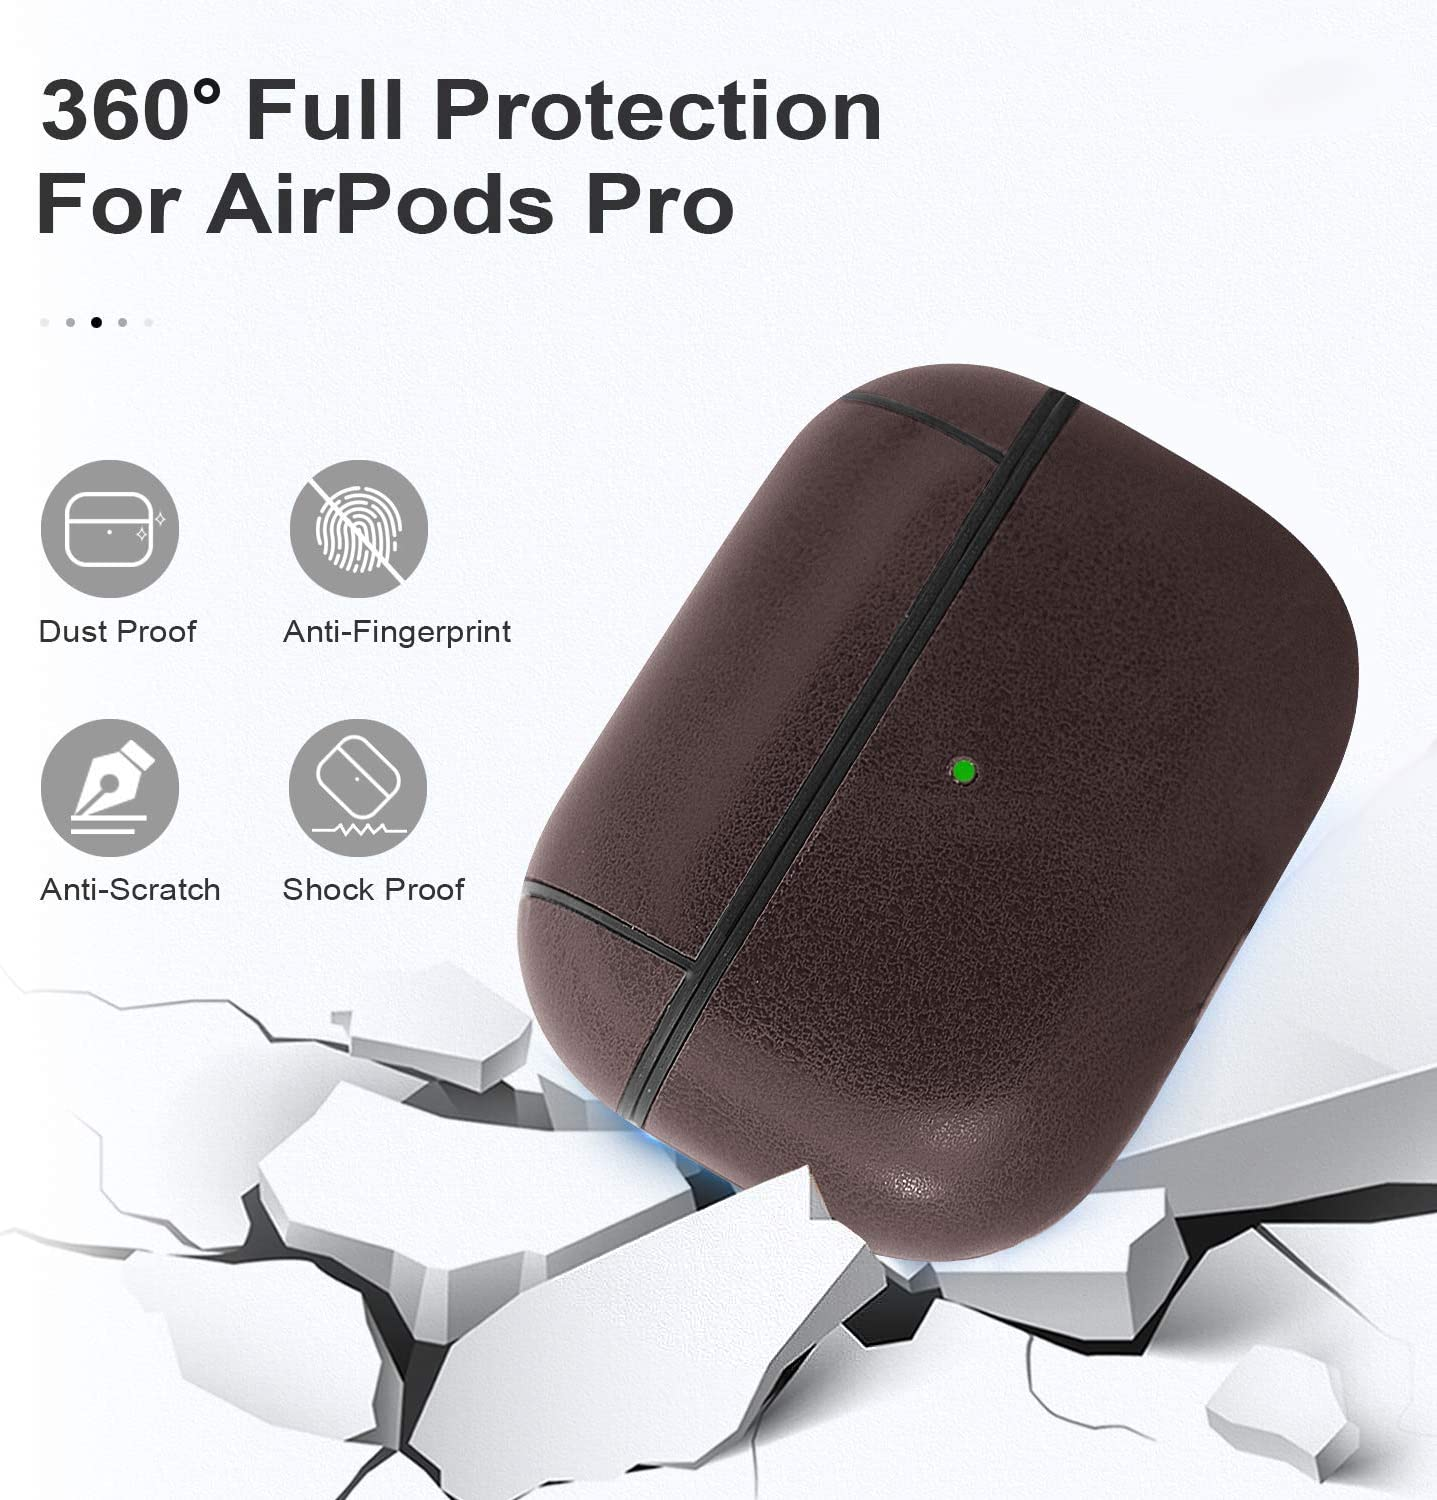 Brown Airpods 3 Leather Case Protective Cover with Keychain Airpods Strap Compatible with Apple Airpods Pro Charging Case 3rd Gen Front LED Visible for AirPods pro case Leather Men Women